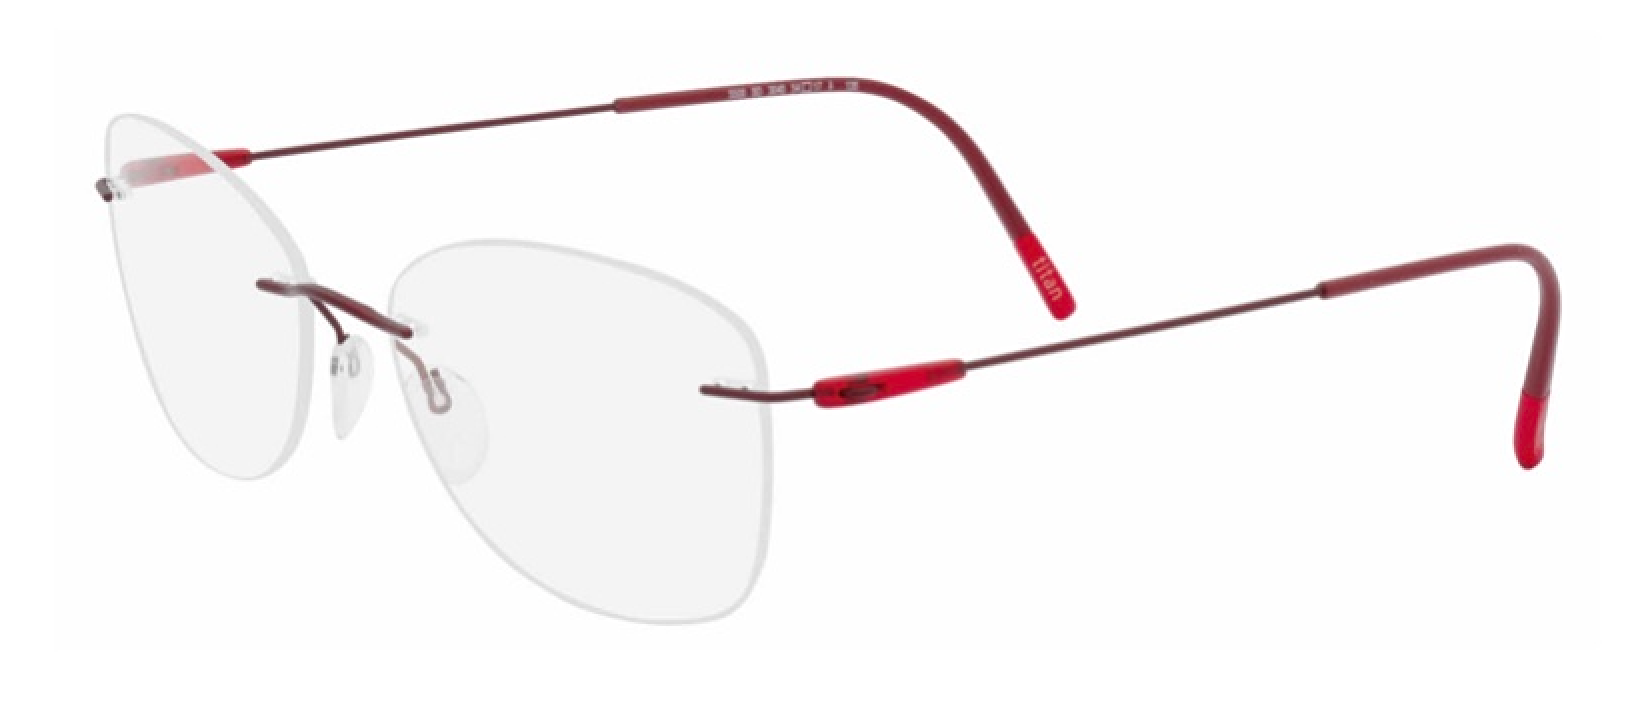 S5500 Rimless Dynamics Colorwave